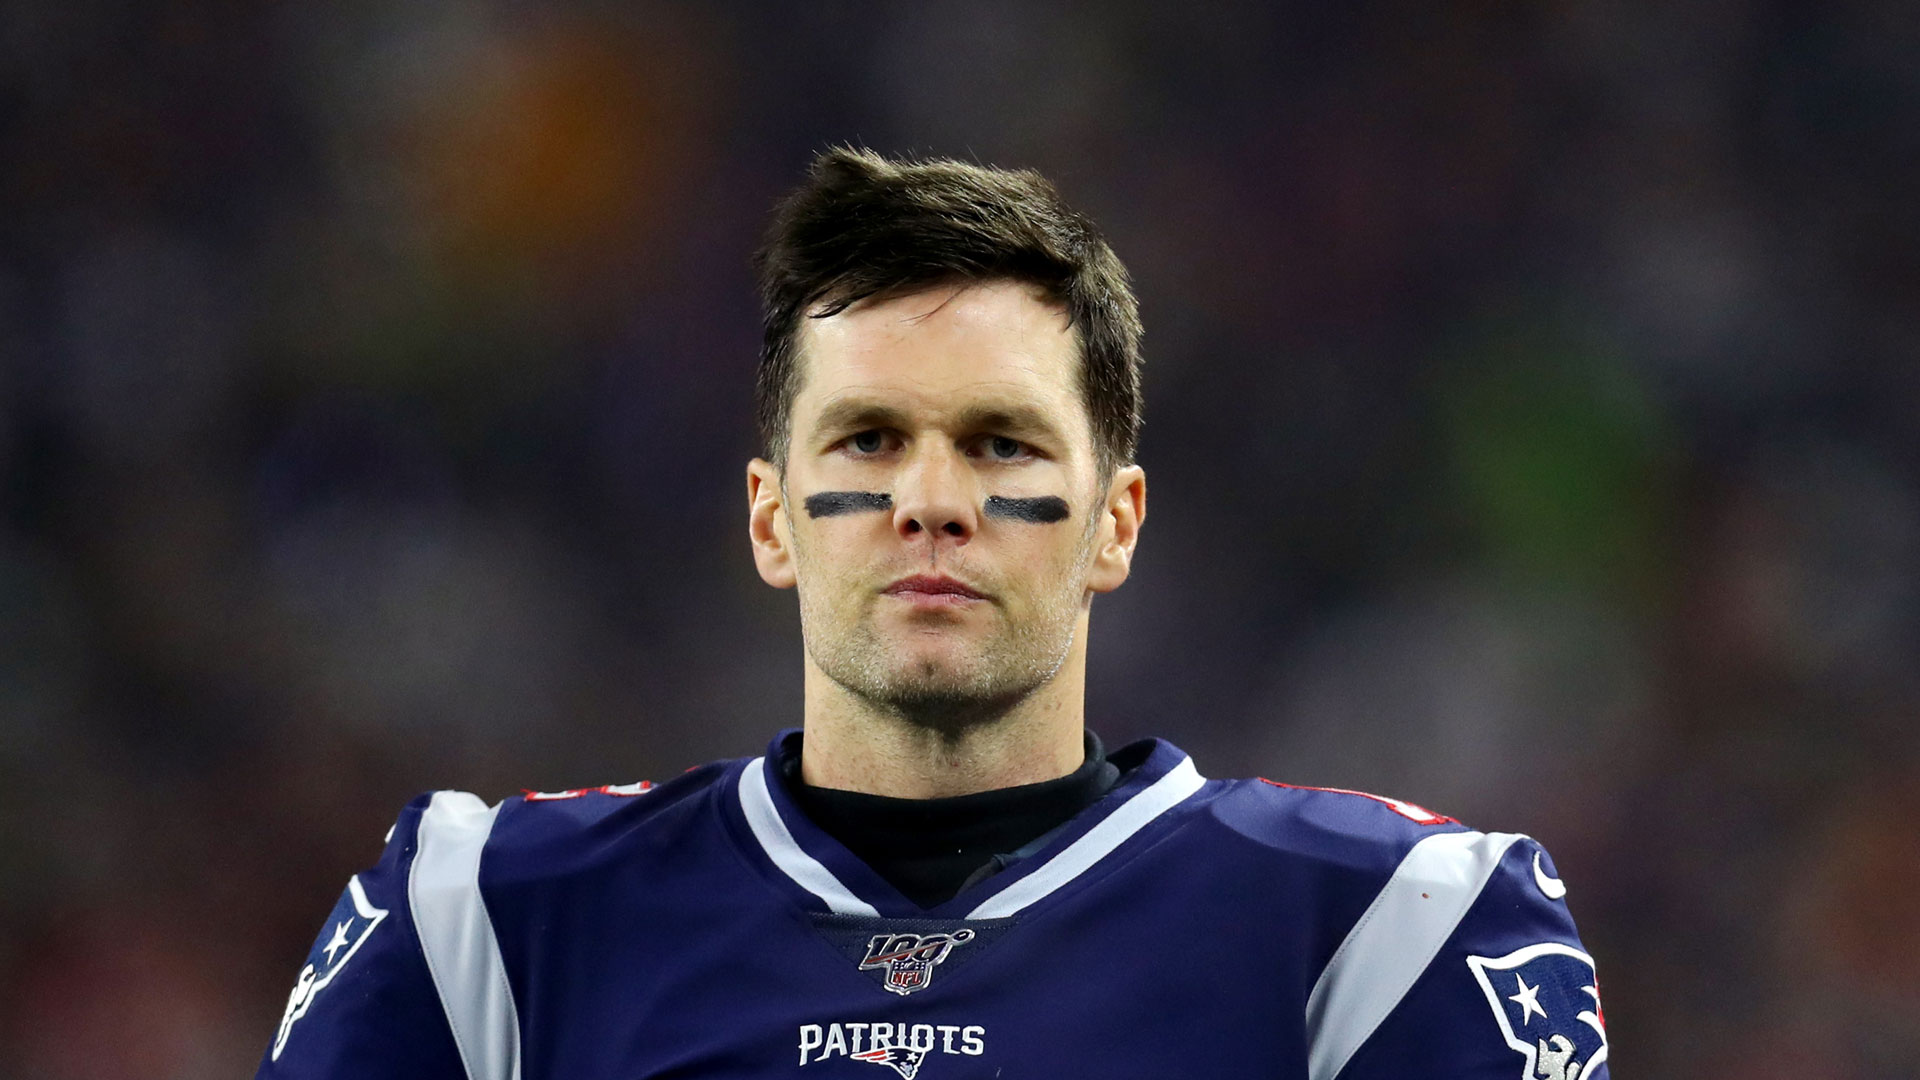 tom brady officially becomes a tampa bay buccaneer fox31 denver tom brady officially becomes a tampa